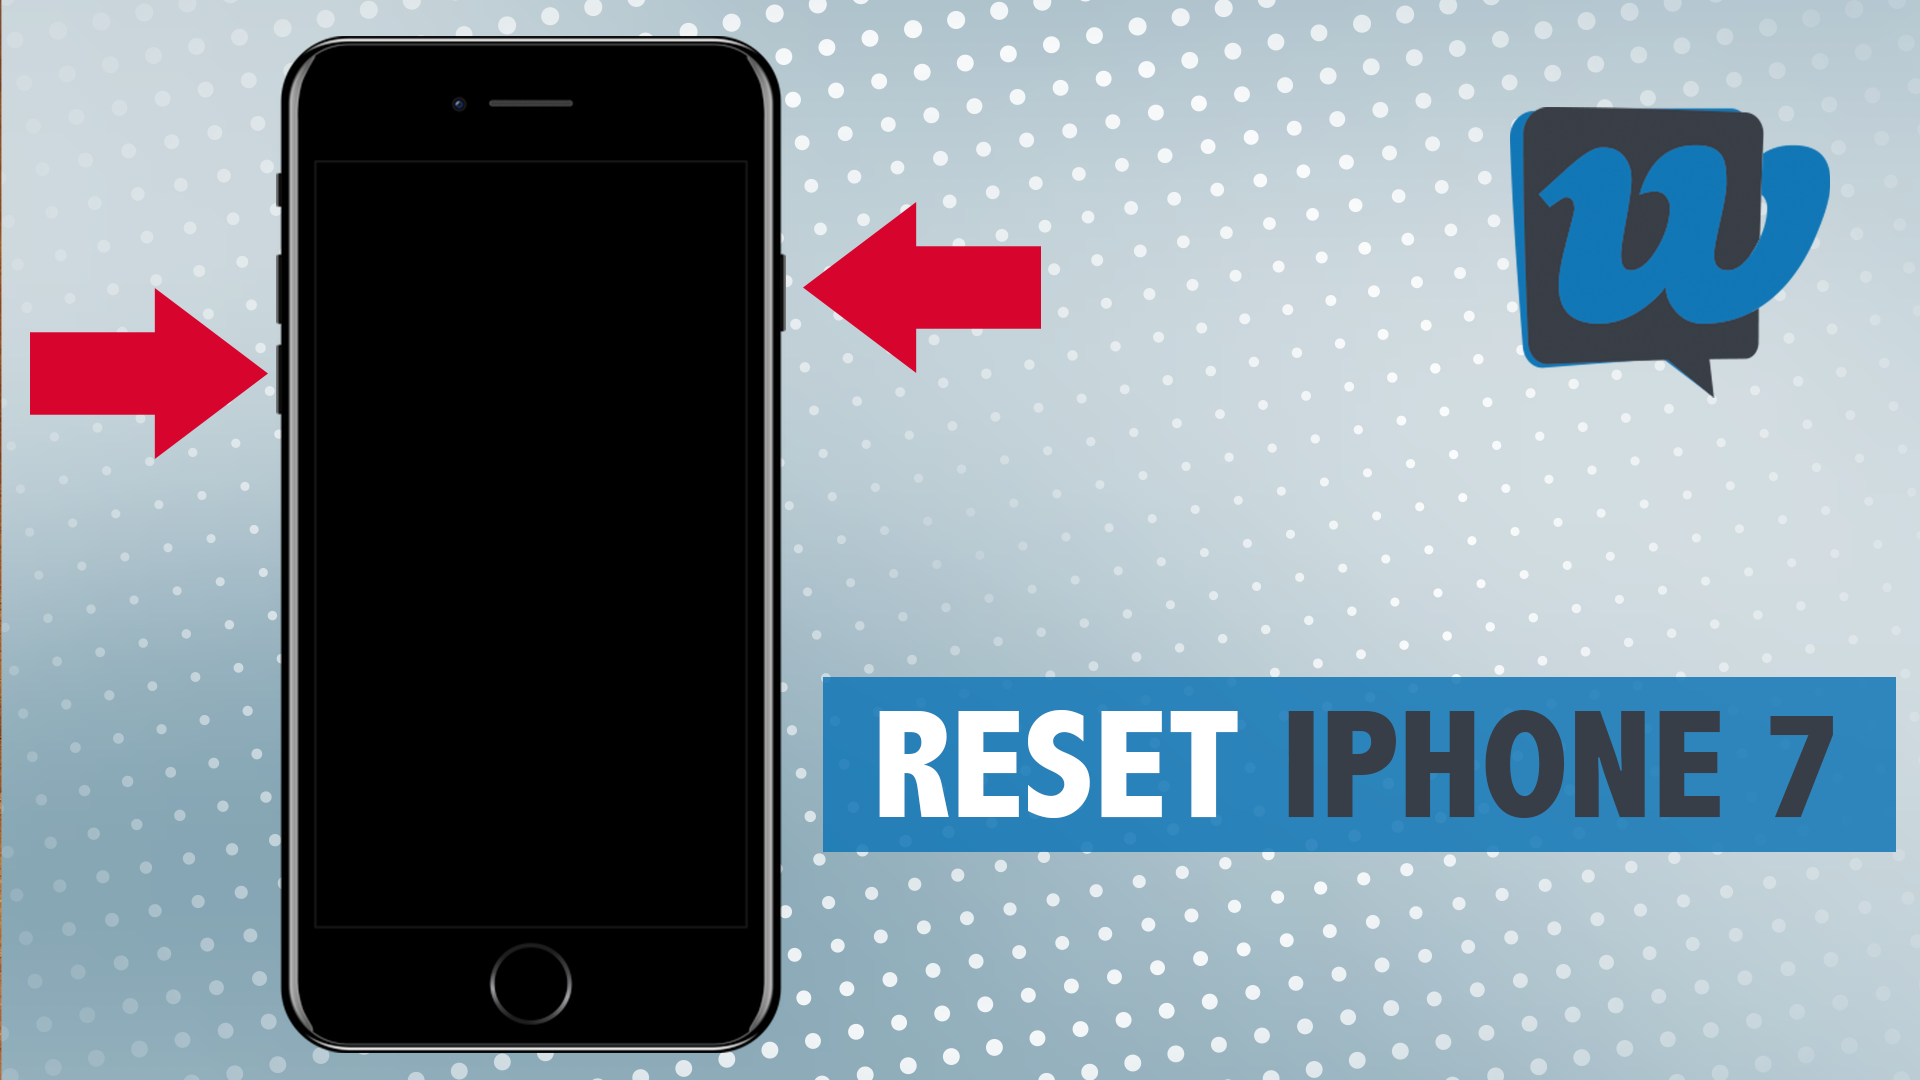 soft reset iphone come resettare un iphone 7 2812